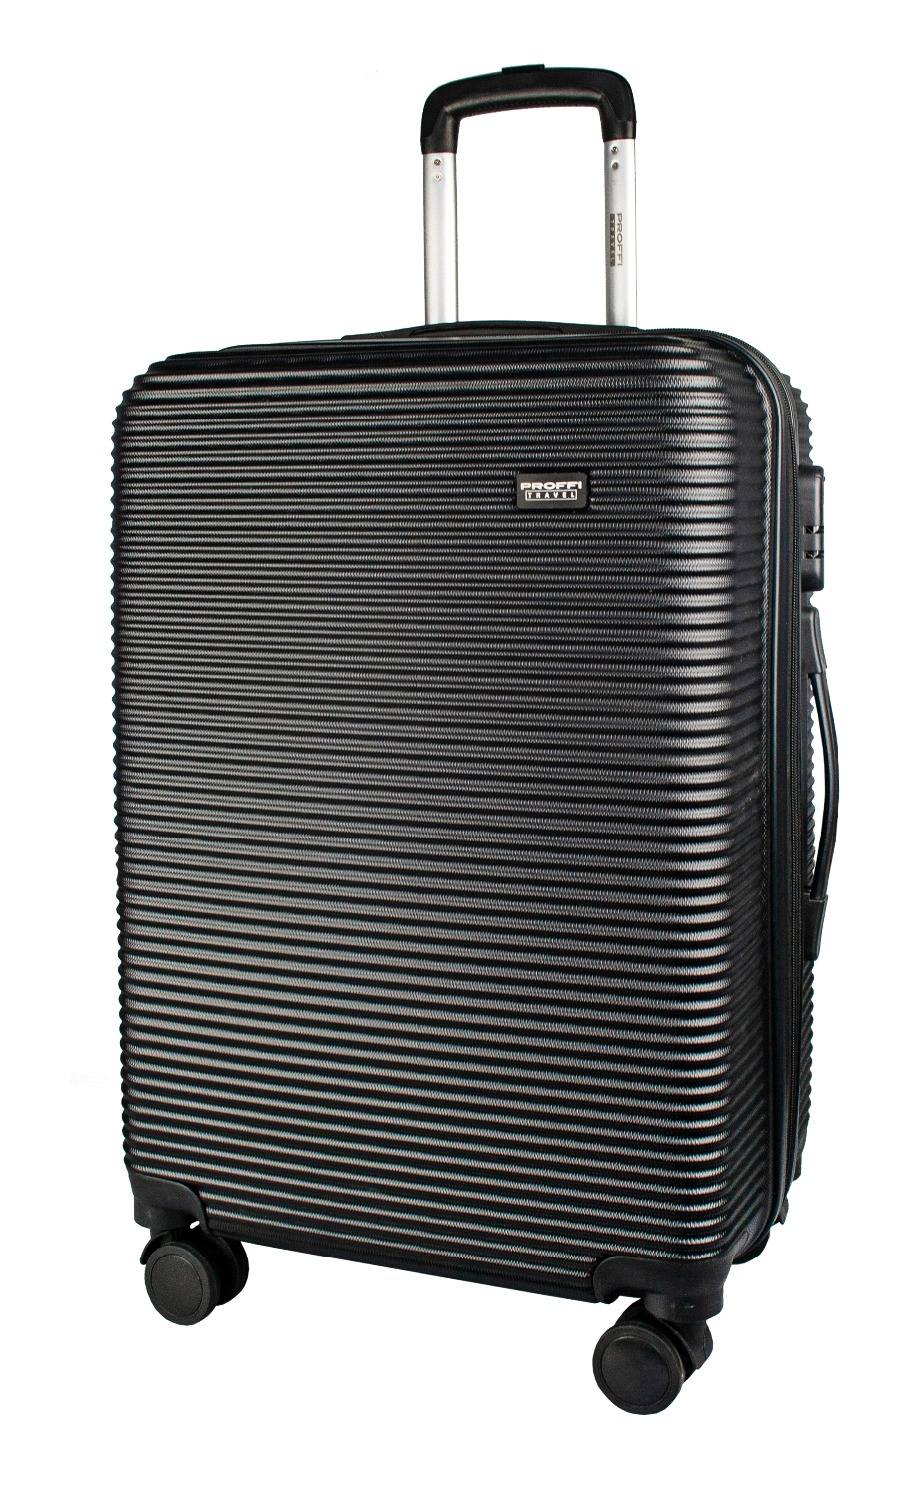 Plastic suitcase PROFFI TRAVEL PH9531black on wheels, M, with built-in weights